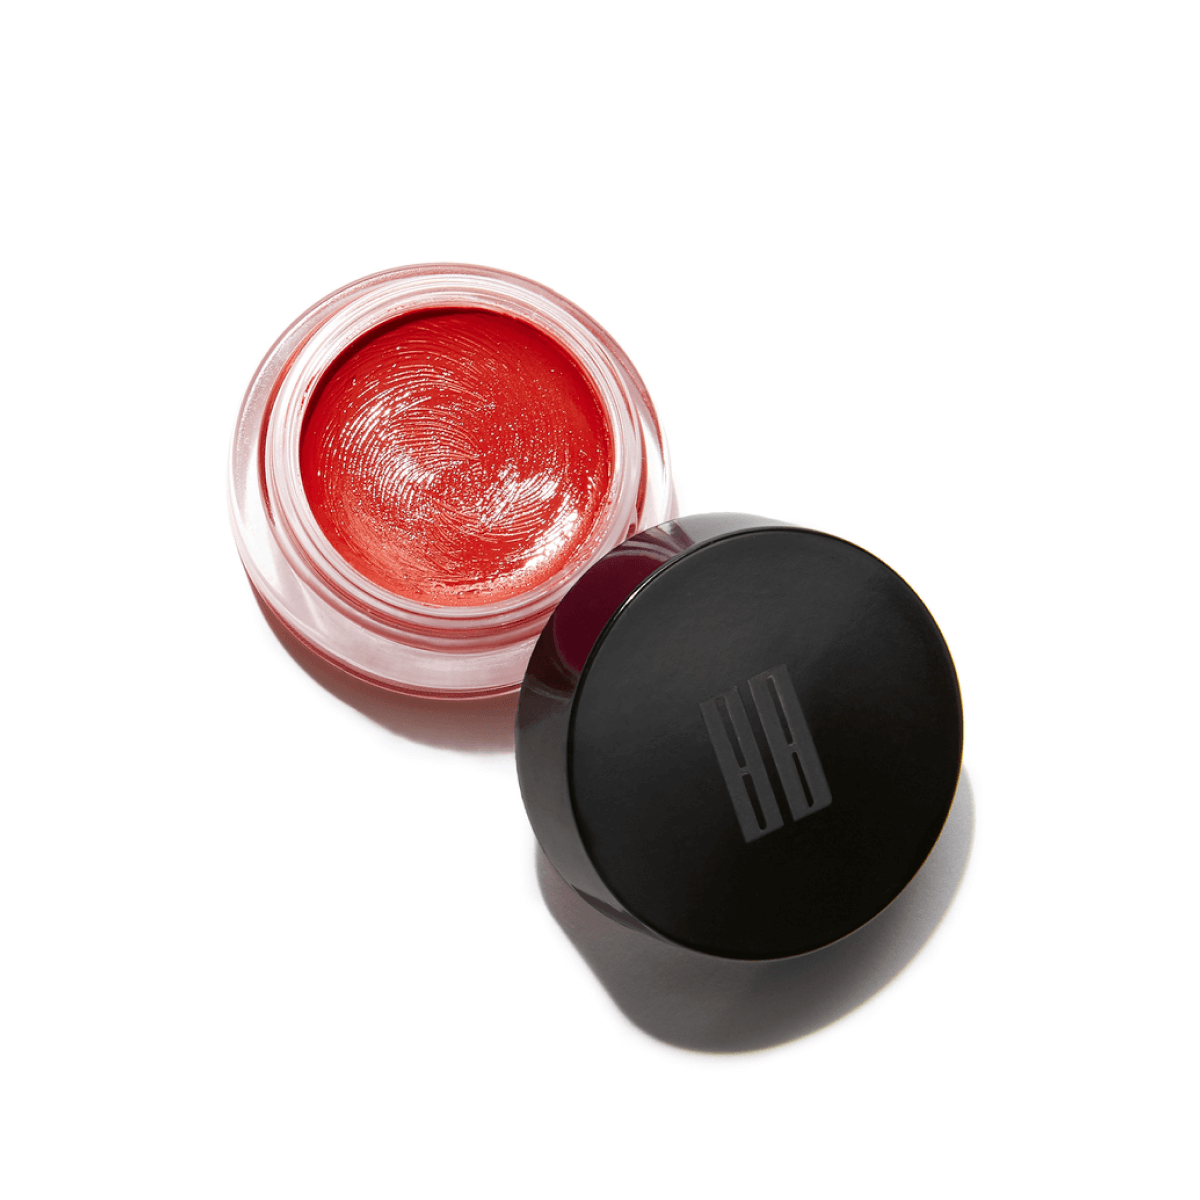 Balmyard Beauty lip+cheek tint